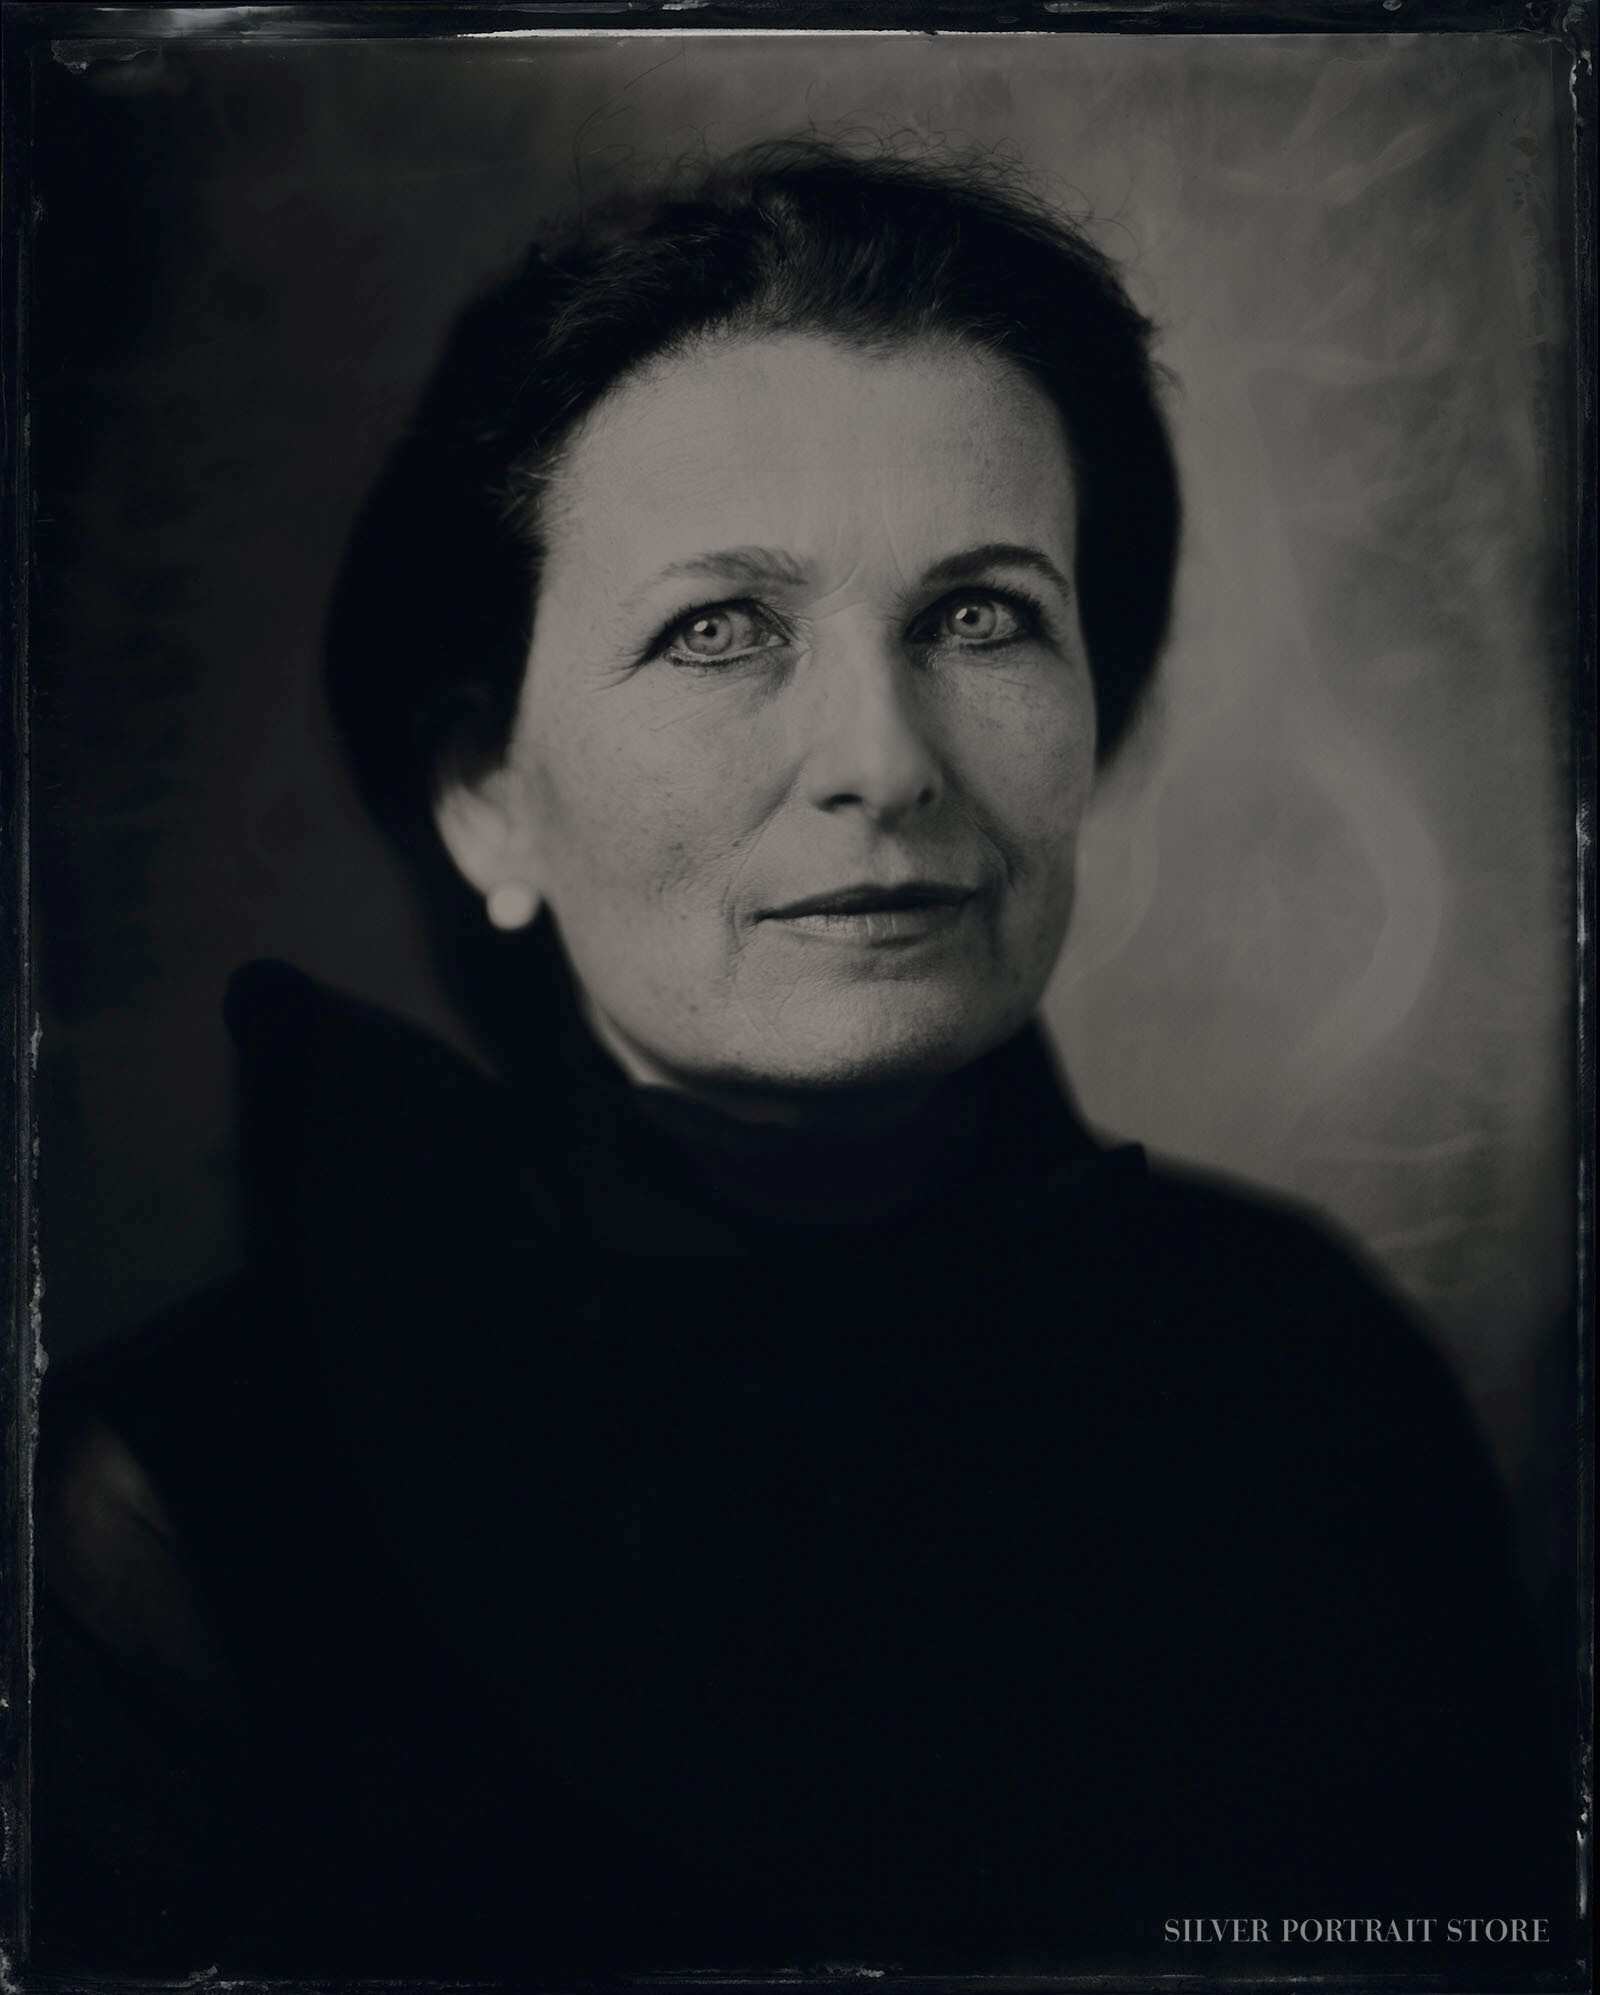 Julia Teves -Silver Portrait Store-Scan from Wet plate collodion-Tintype 20 x 25 cm.